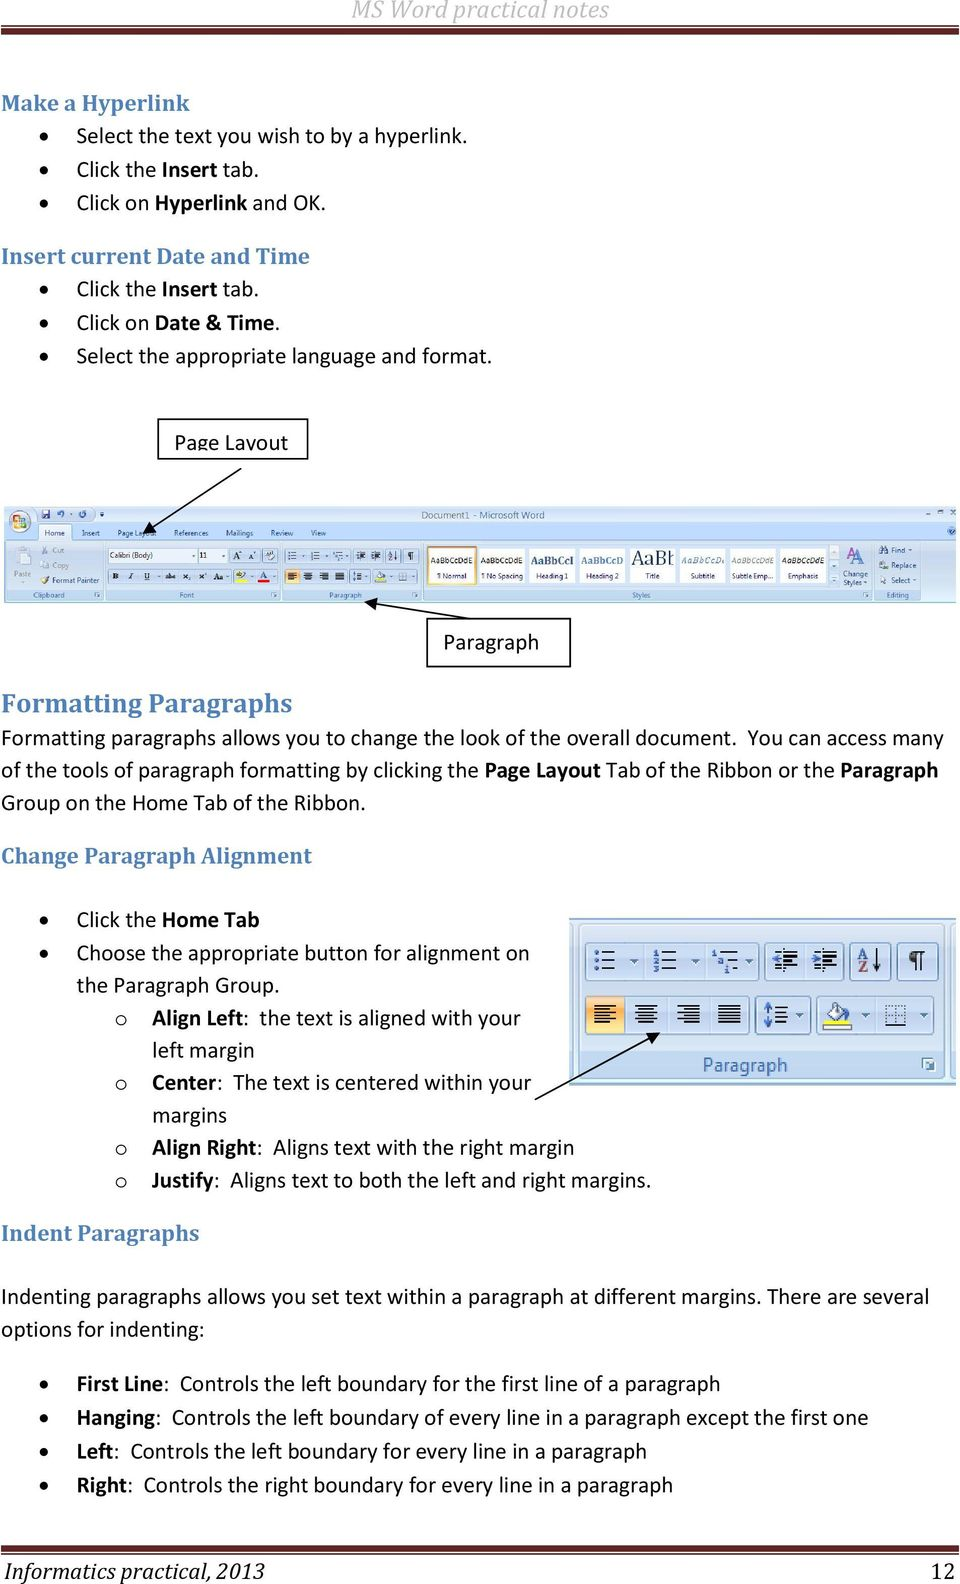 You can access many of the tools of paragraph formatting by clicking the Page Layout Tab of the Ribbon or the Paragraph Group on the Home Tab of the Ribbon.